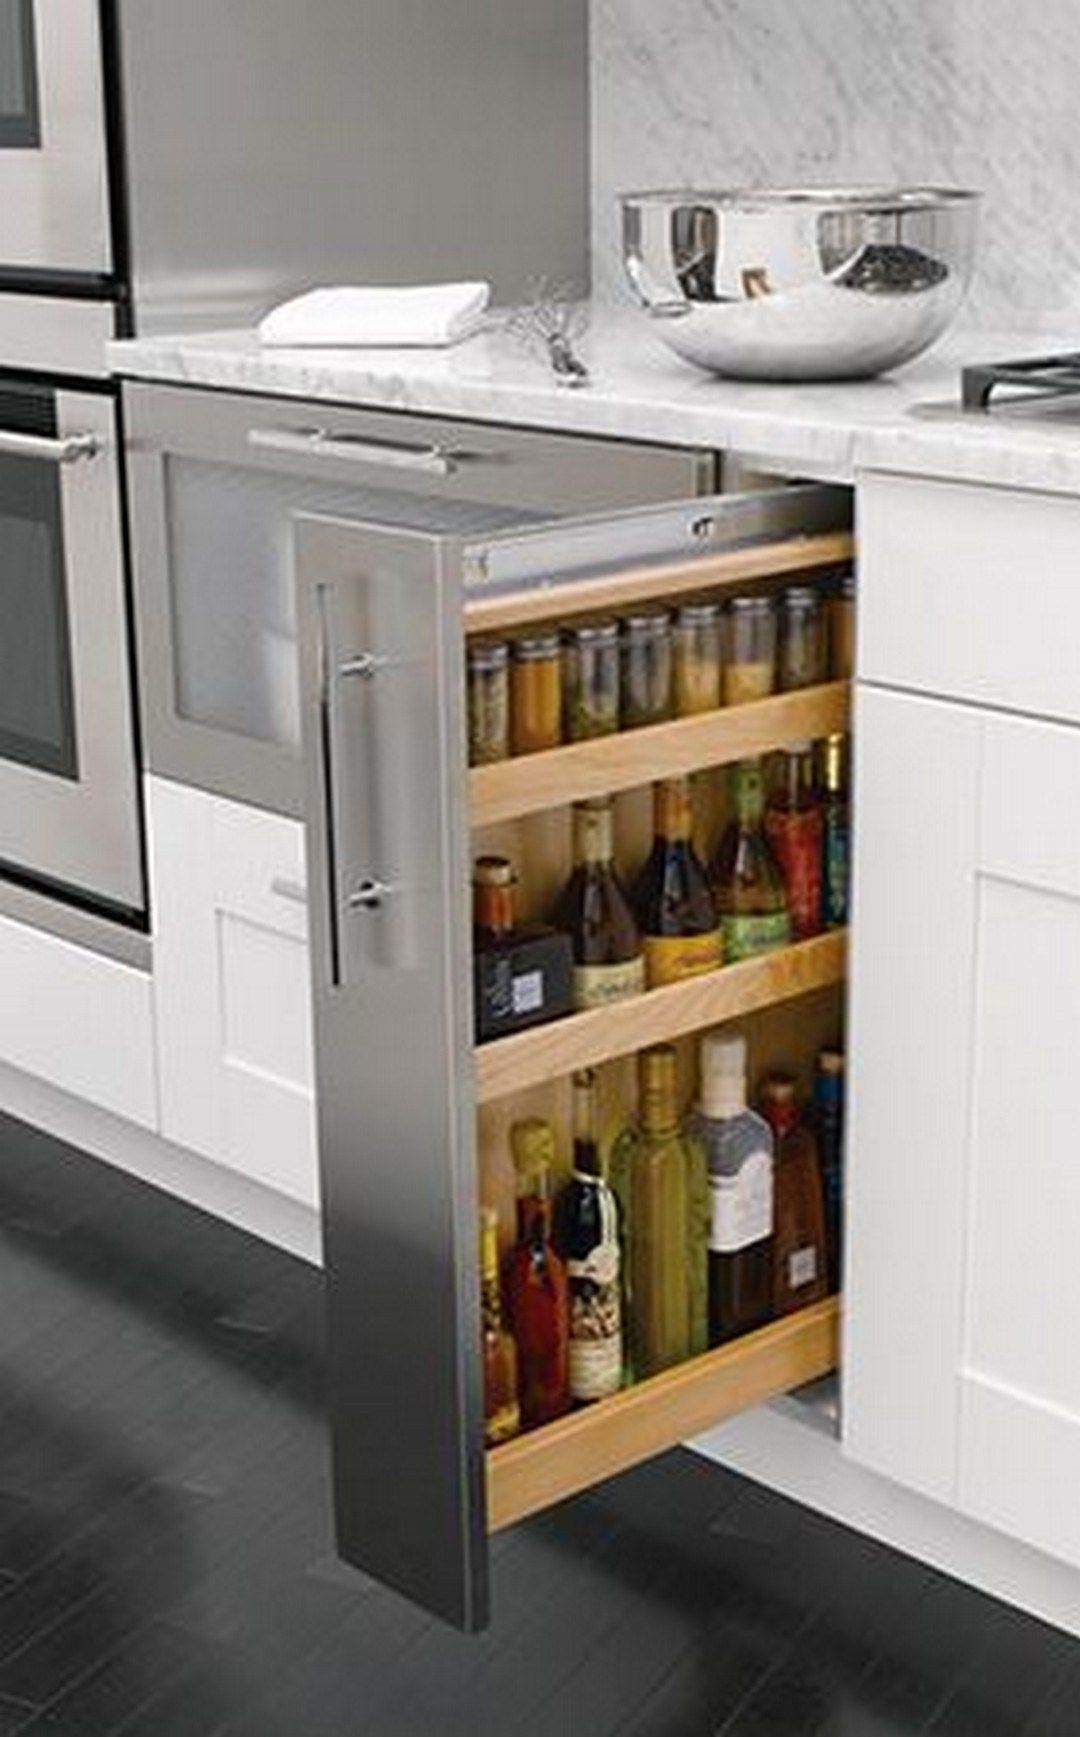 29 Brilliant Hidden Kitchen Storage Solutions (19) #storagesolutions